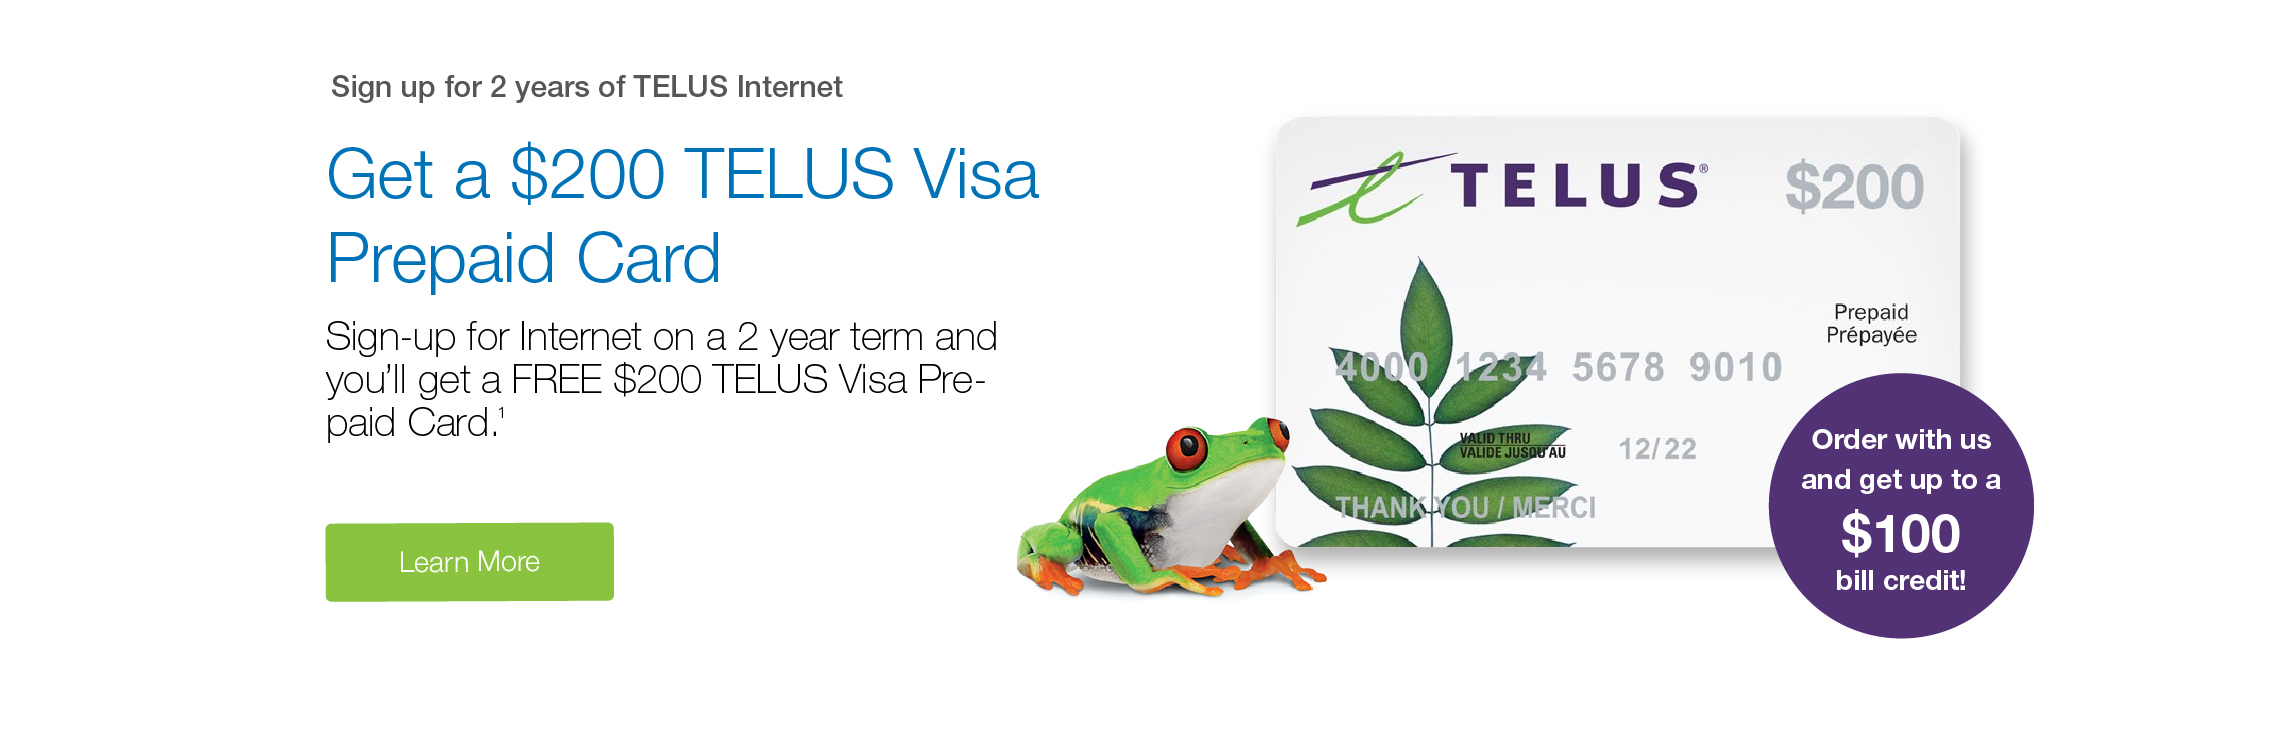 Sign up for 2 years and get a FREE $300 VISA gift card